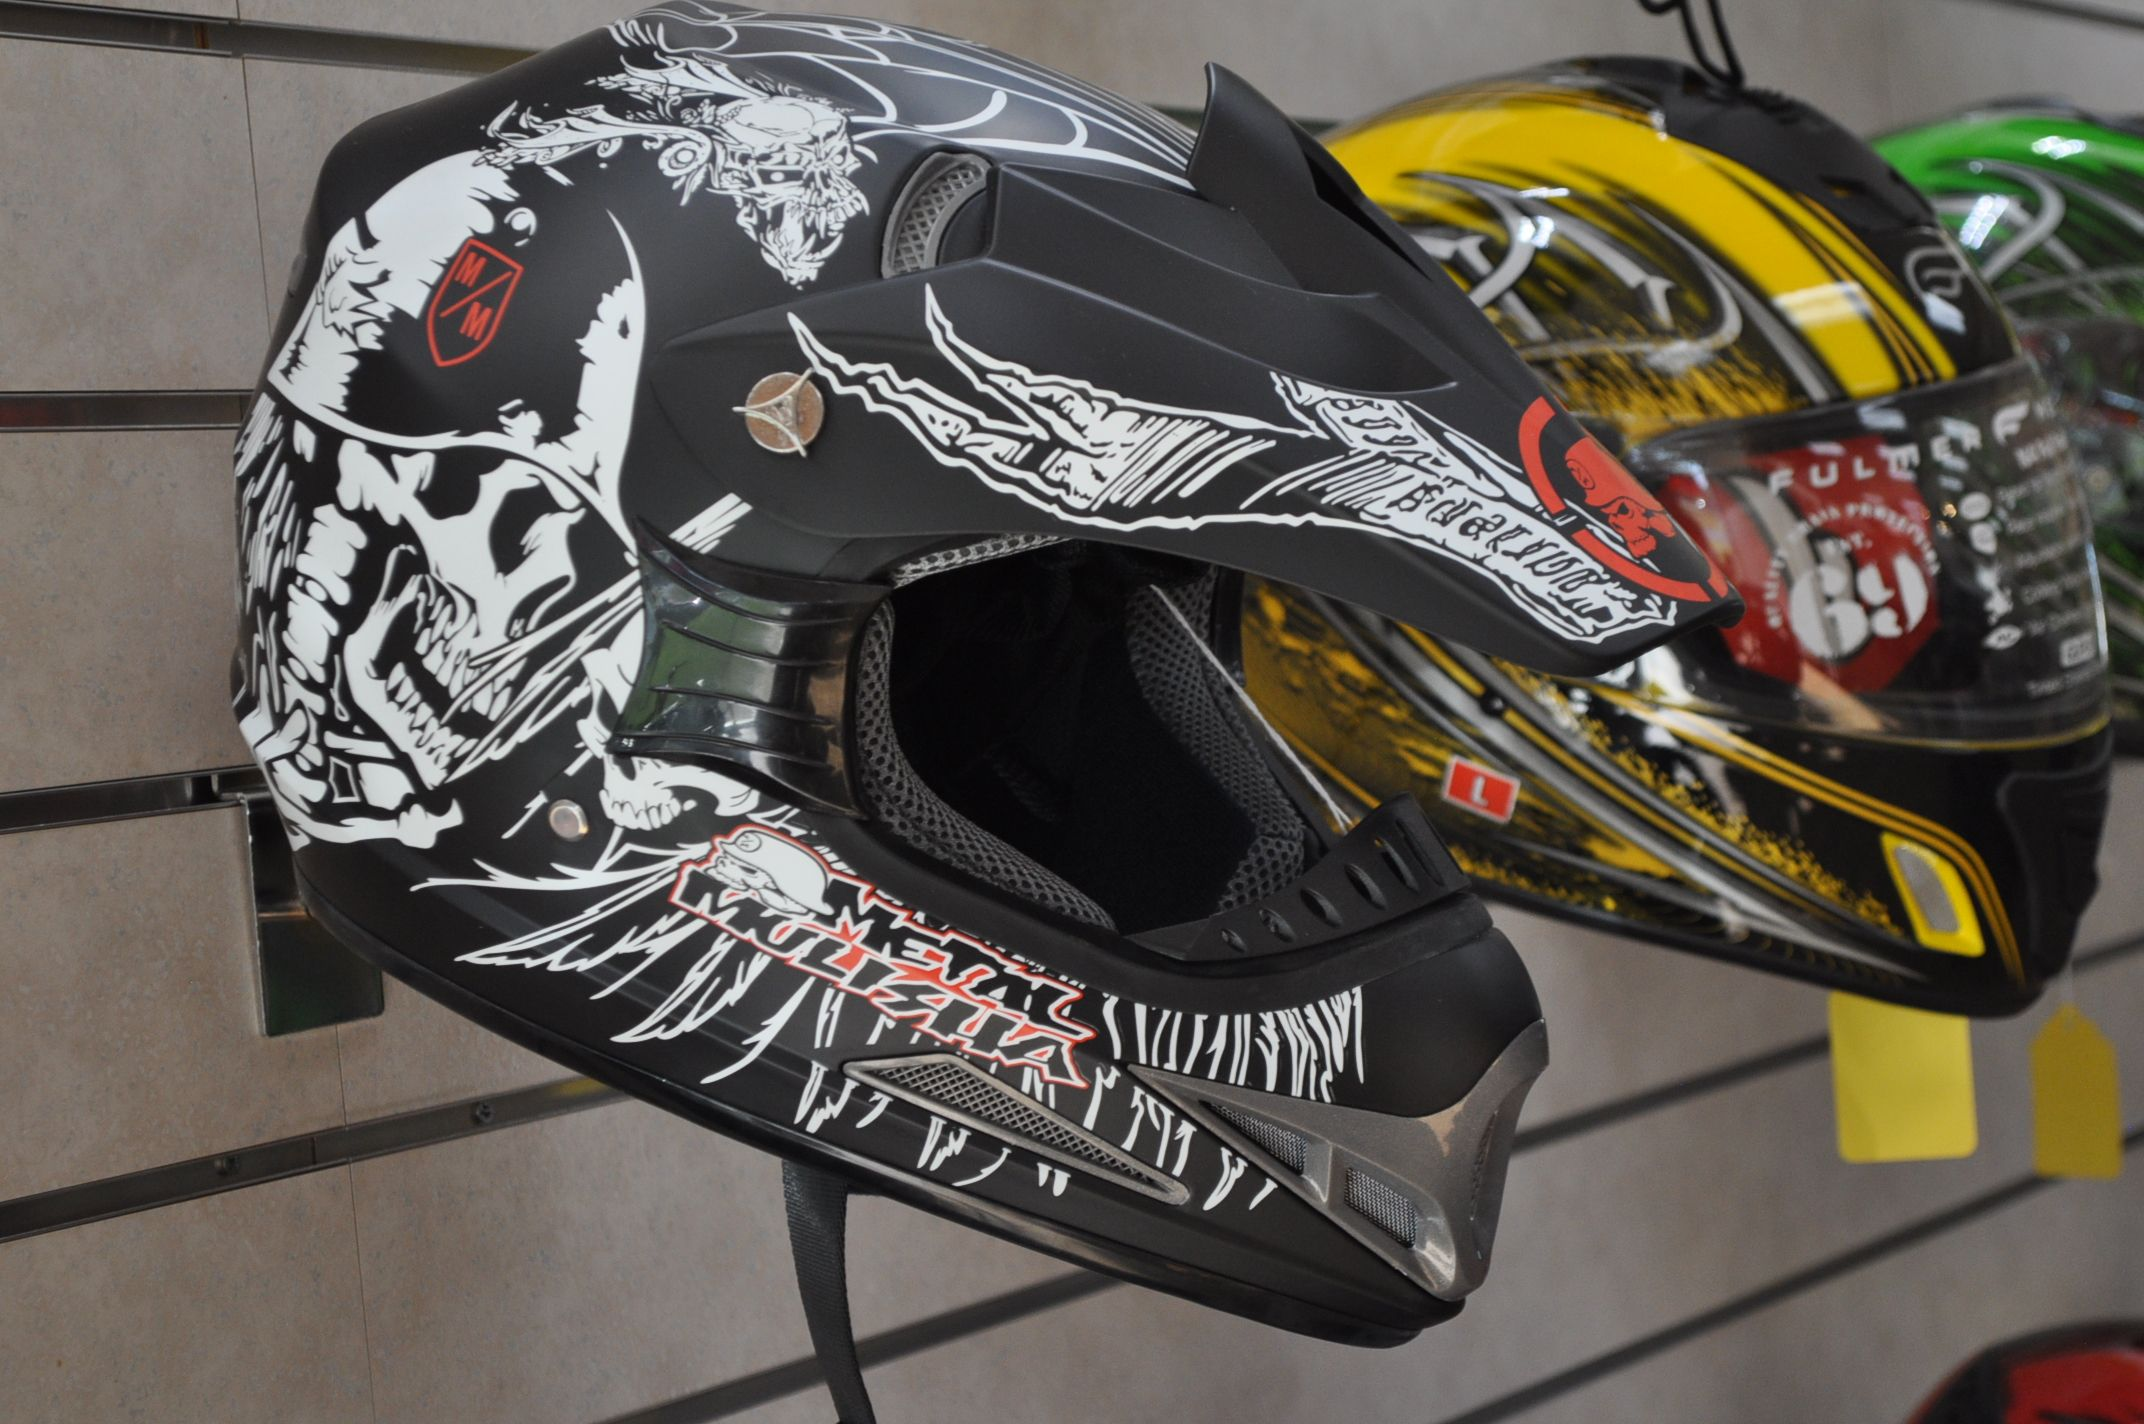 Get A 100 Dot Approved Motocross Helmet For Only 25 With Any Atv